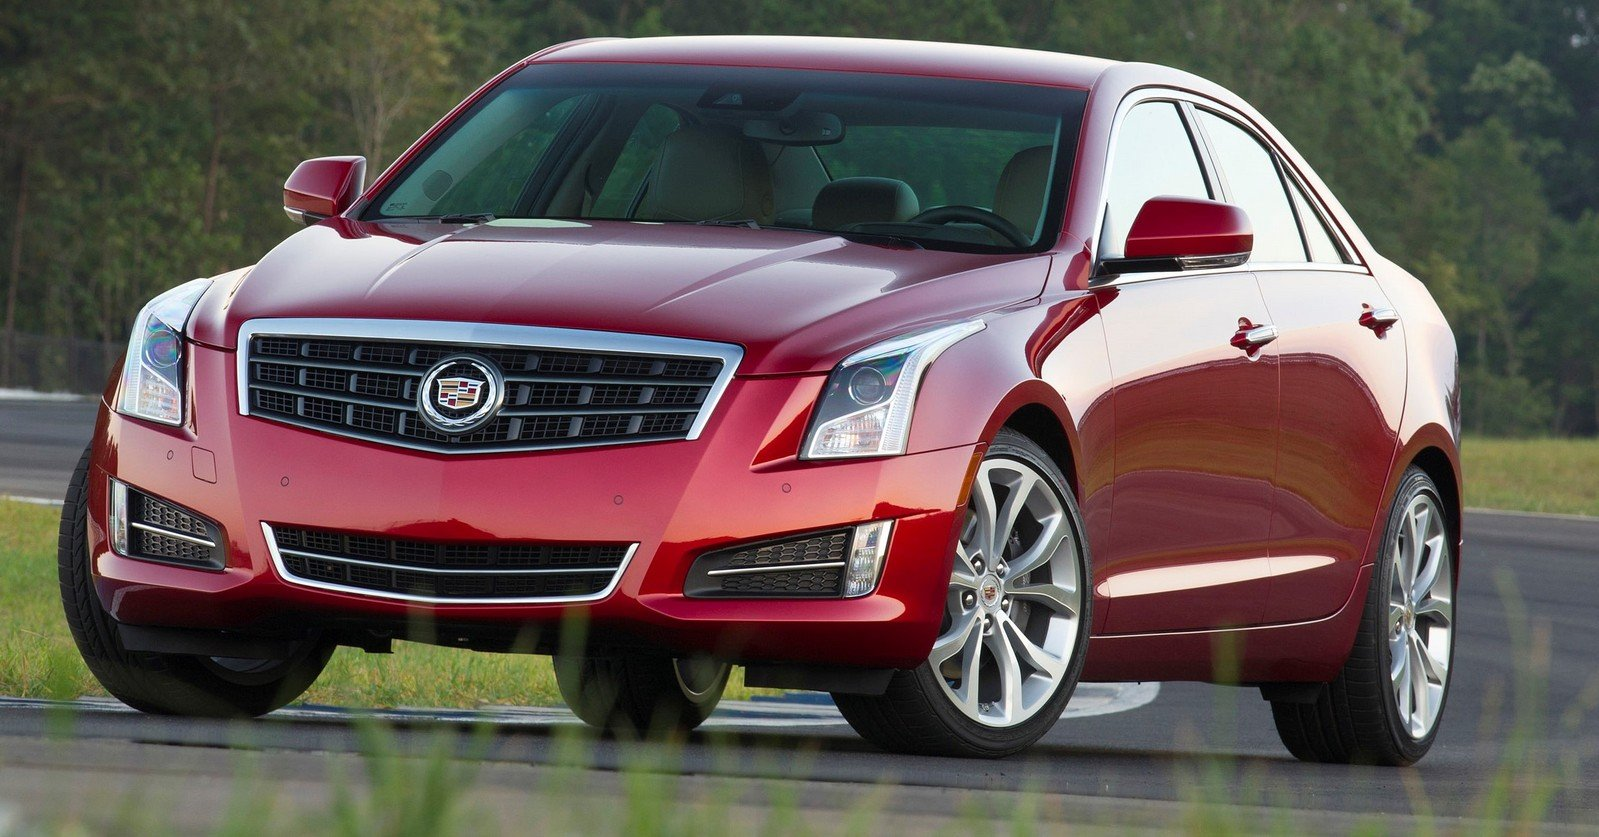 2014 cadillac ats picture 514223 car review top speed. Cars Review. Best American Auto & Cars Review